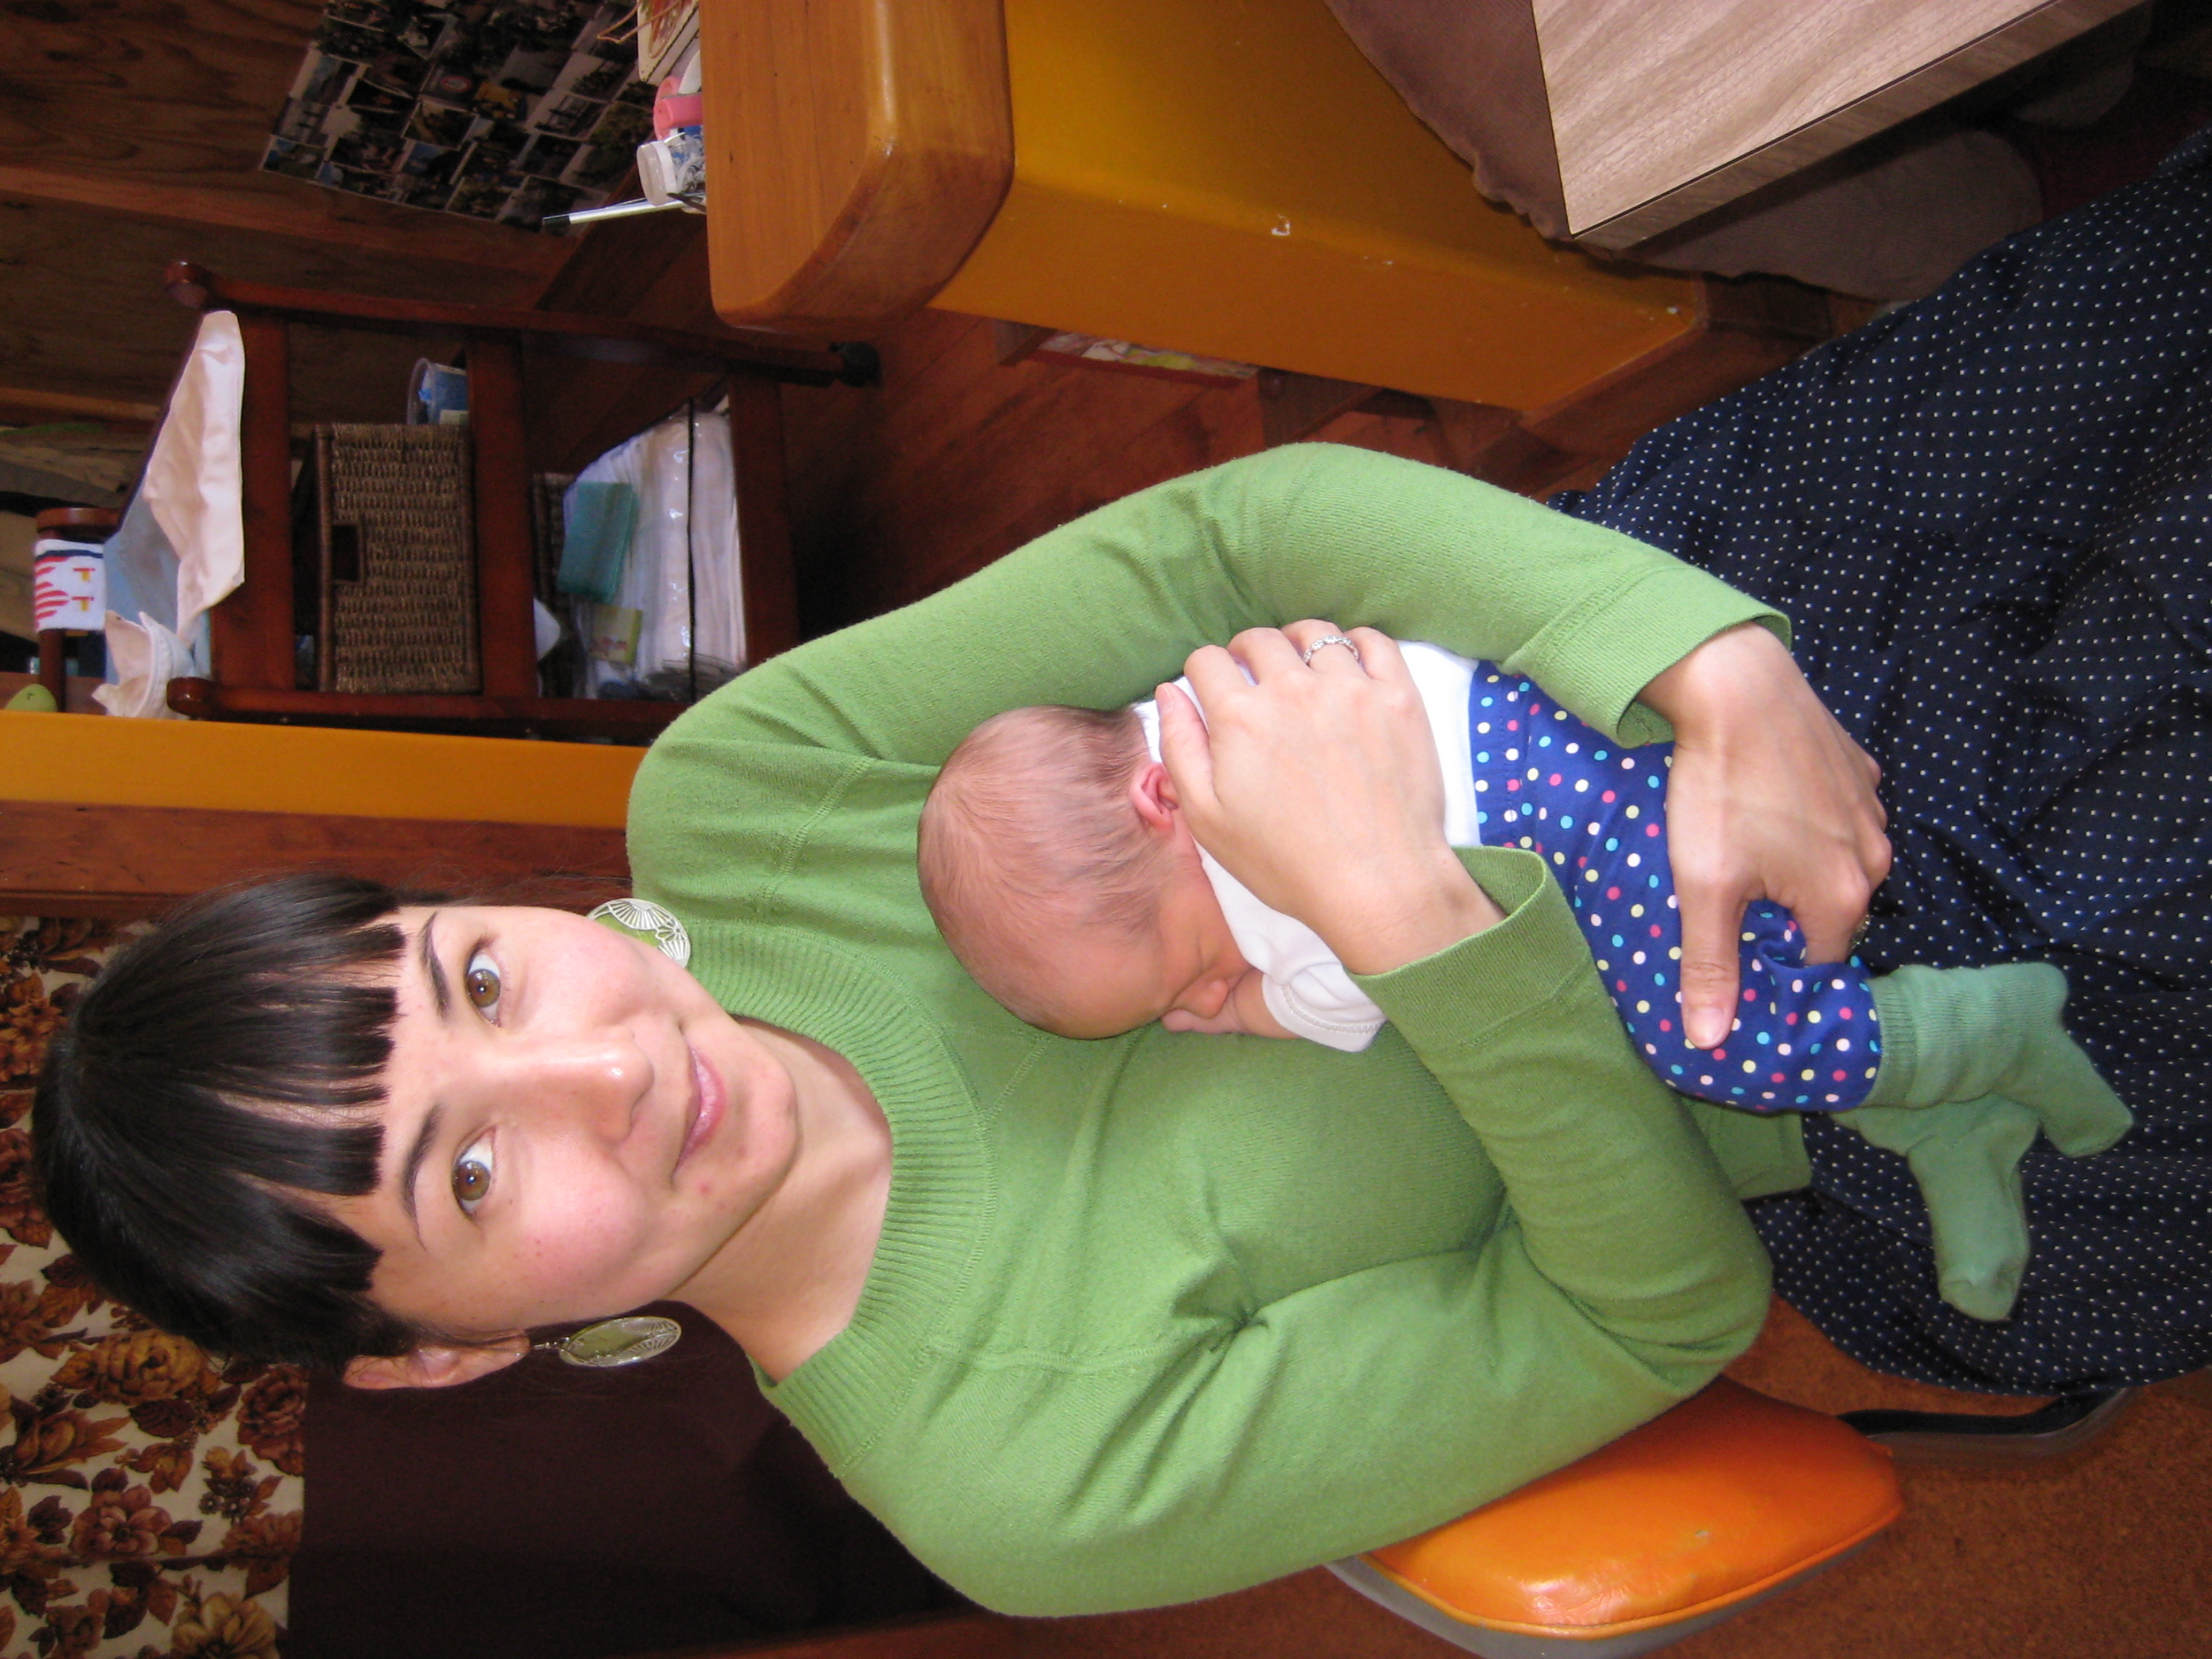 1 week old: Possibly Neko's earliest fashionable moment, accidentally matching his very stylish Aunty Gen. I loved those polka dot pants, probably meant for a girl, but so cute on a tiny guy too.